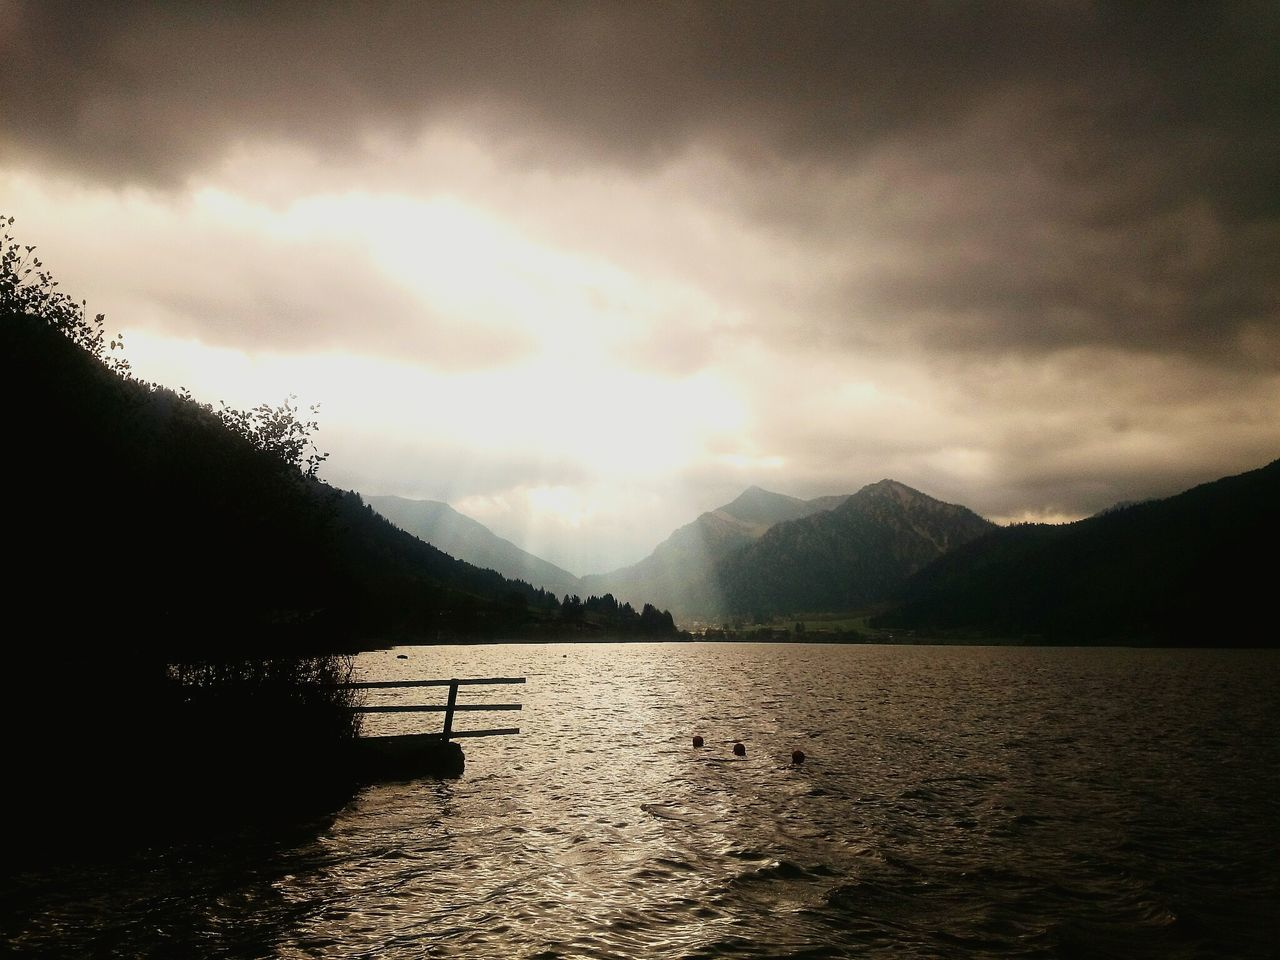 mountain, scenics, water, silhouette, beauty in nature, tranquil scene, nature, tranquility, sky, mountain range, lake, cloud - sky, waterfront, no people, outdoors, day